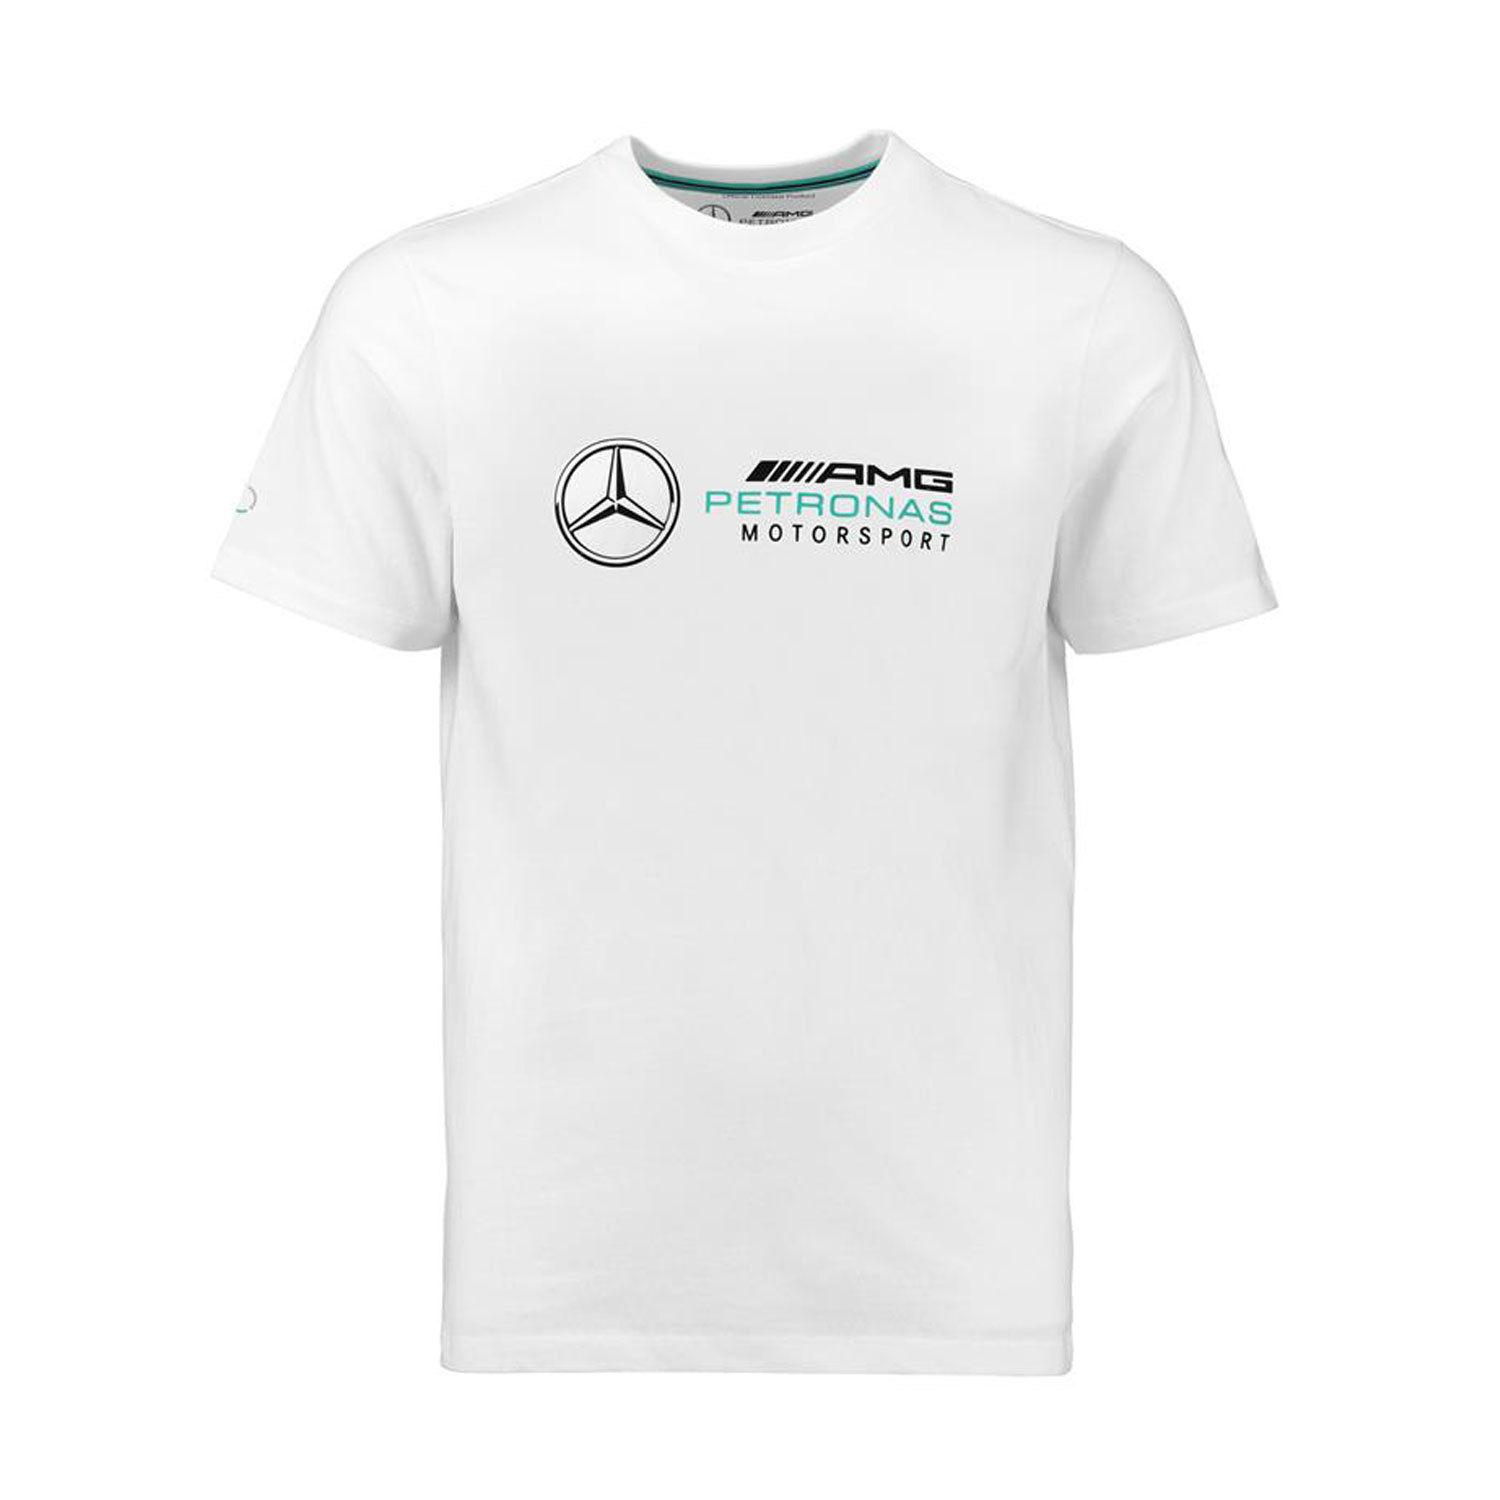 71f800b4a Details Zu 2018 Mercedes AMG Petronas F1 Team Logo T-shirt White - L Funny  Unisex Casual Tee Top Free Shipping Unisex Funny Classic Unique Online with  ...